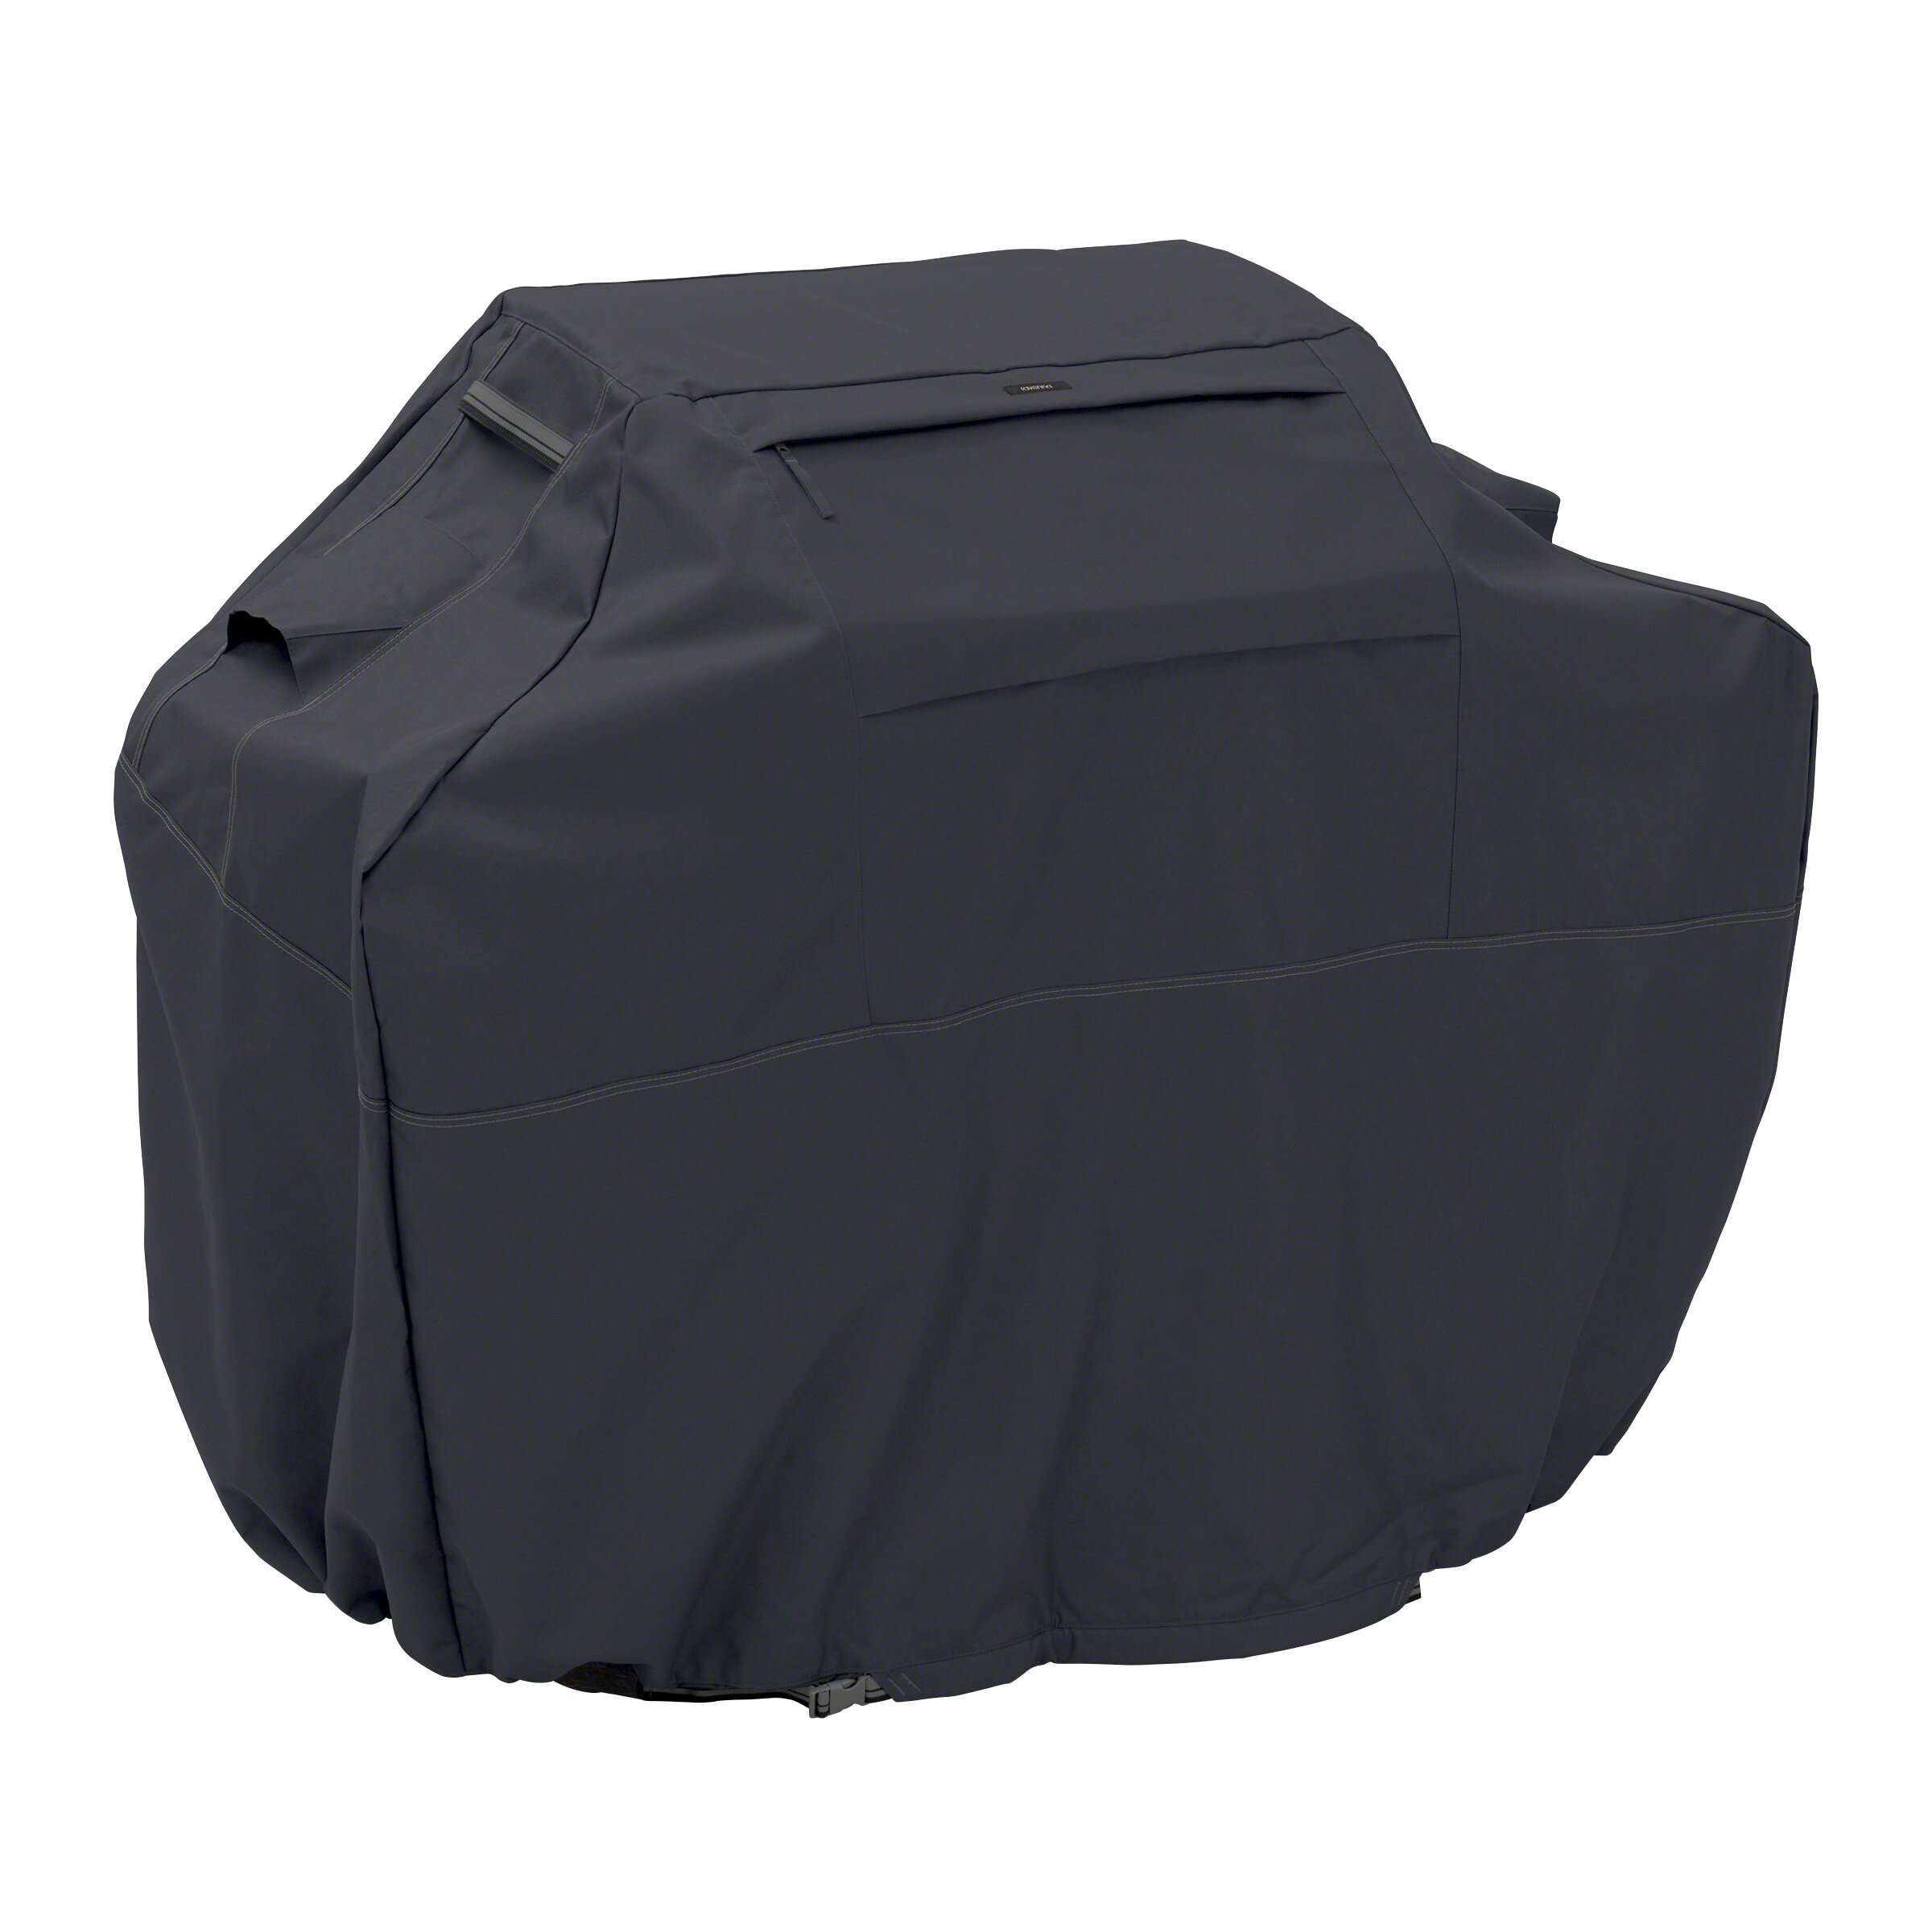 Arlmont Co Kristian Patio Bbq Grill Cover Reviews Wayfair